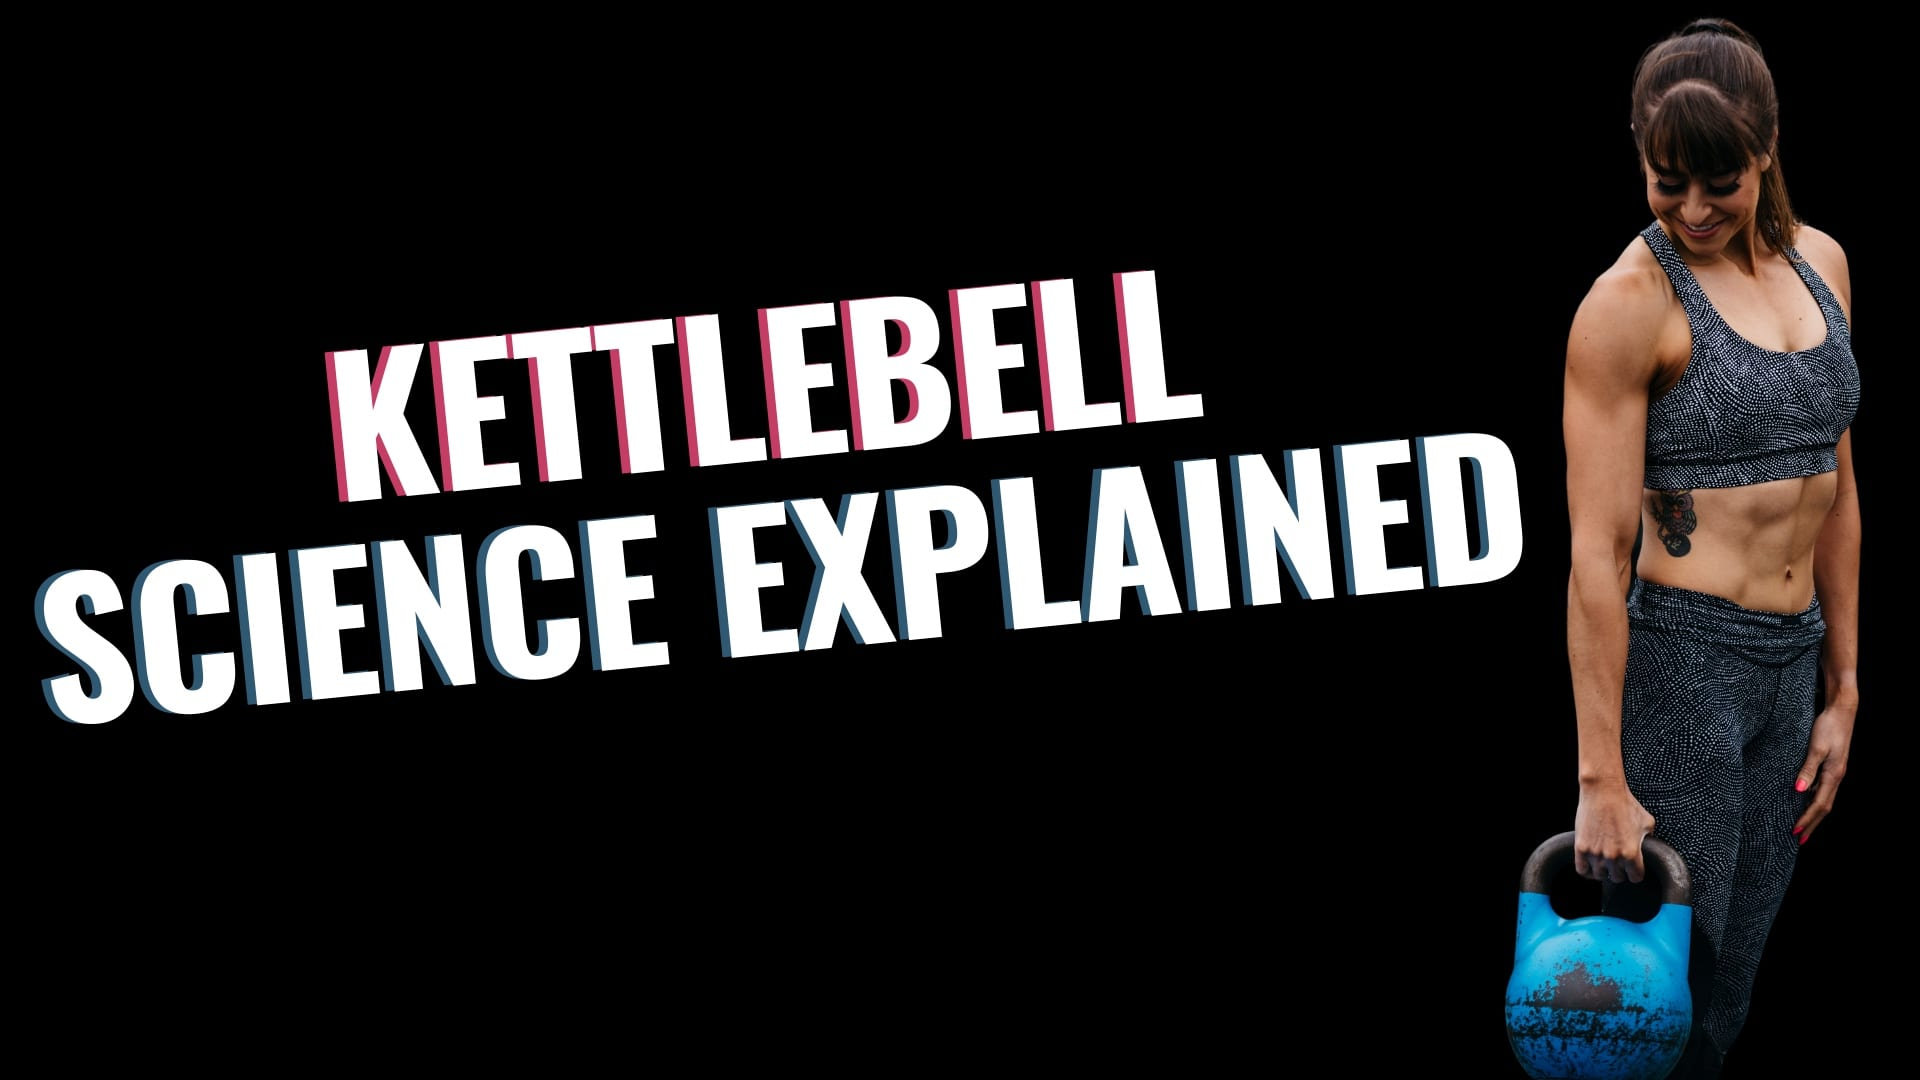 FHP S2:E2- The Fitness Hacks Podcast: The Science Behind Kettlebell Training